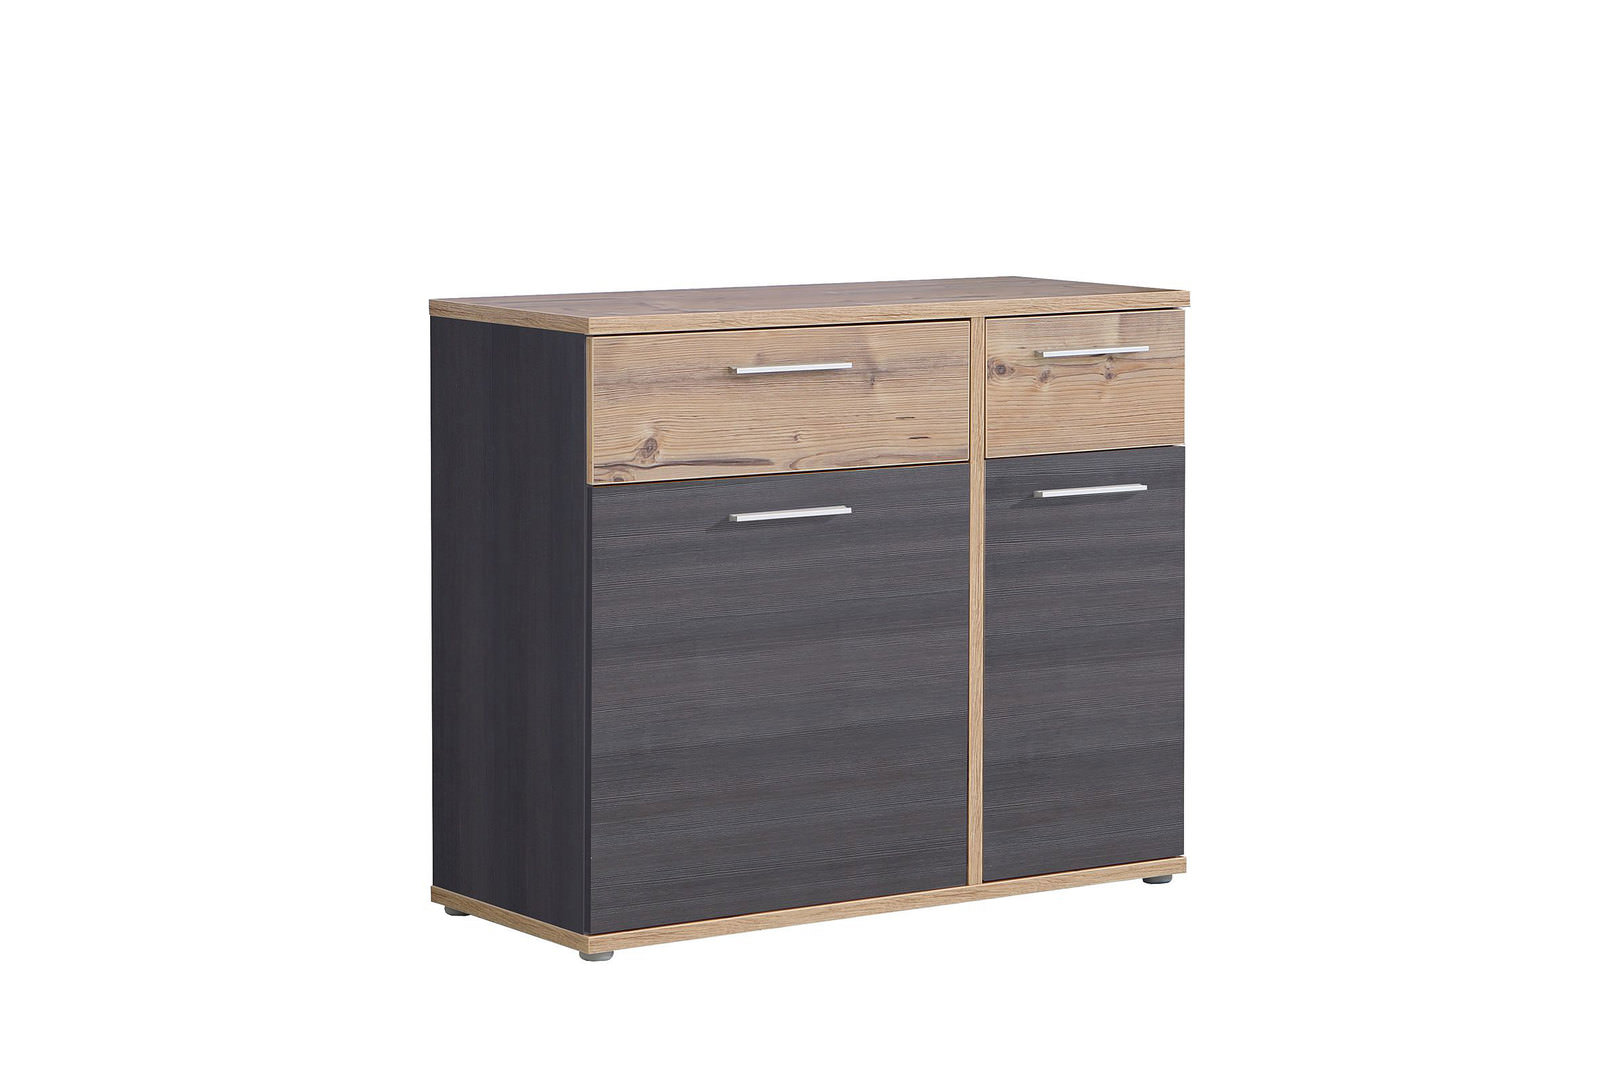 self kommode online entdecken schaffrath ihr m belhaus. Black Bedroom Furniture Sets. Home Design Ideas